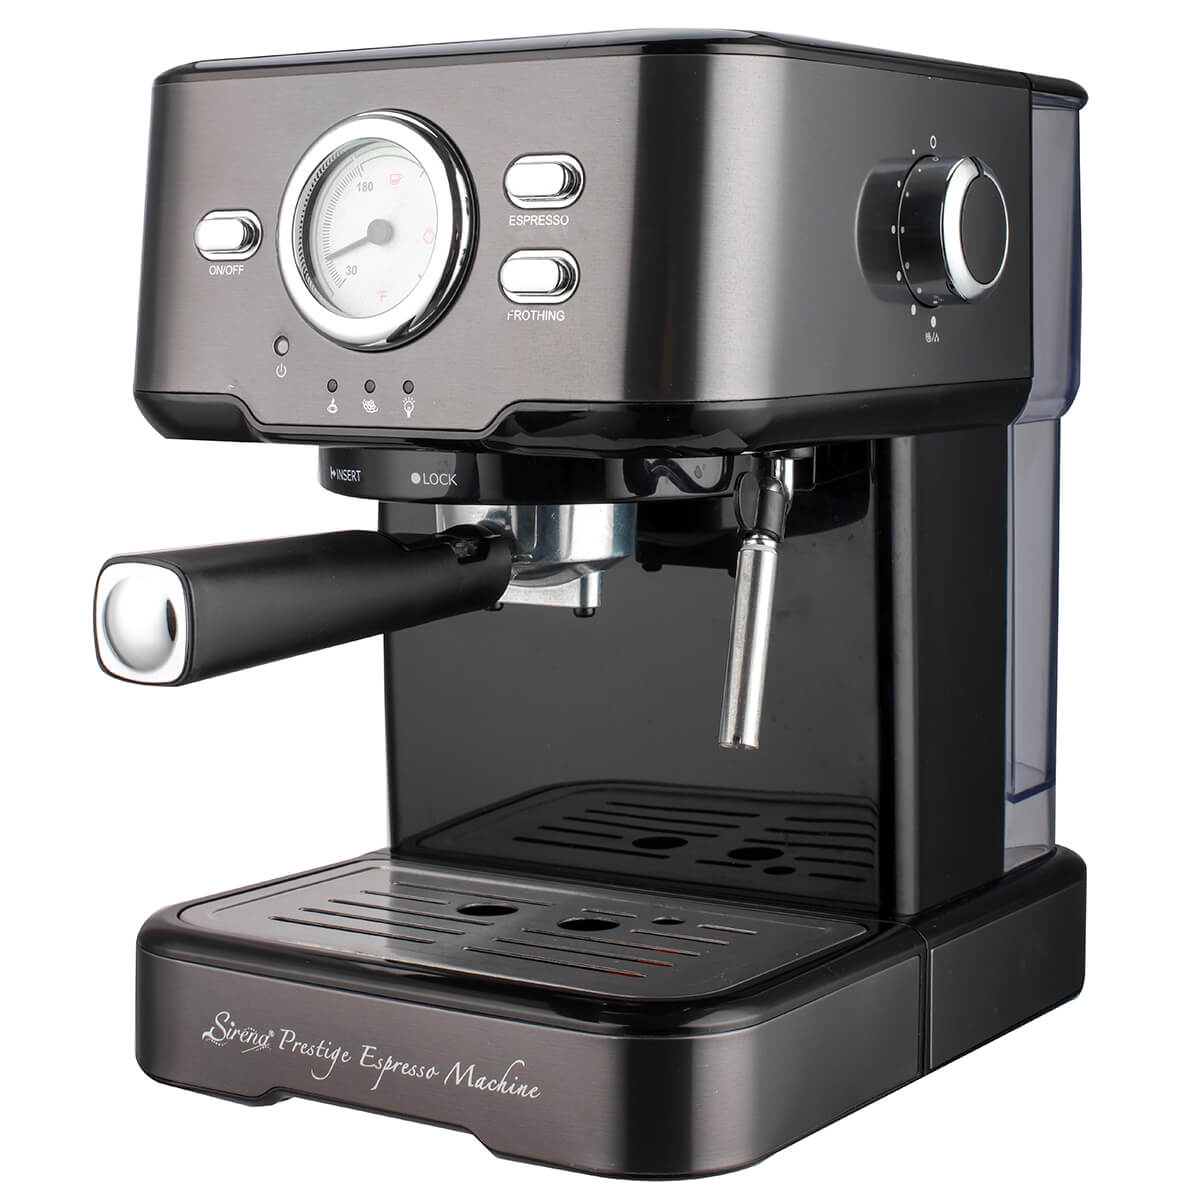 Sirena Prestige Espresso Machine, 15 Bar Espresso and Cappuccino Maker